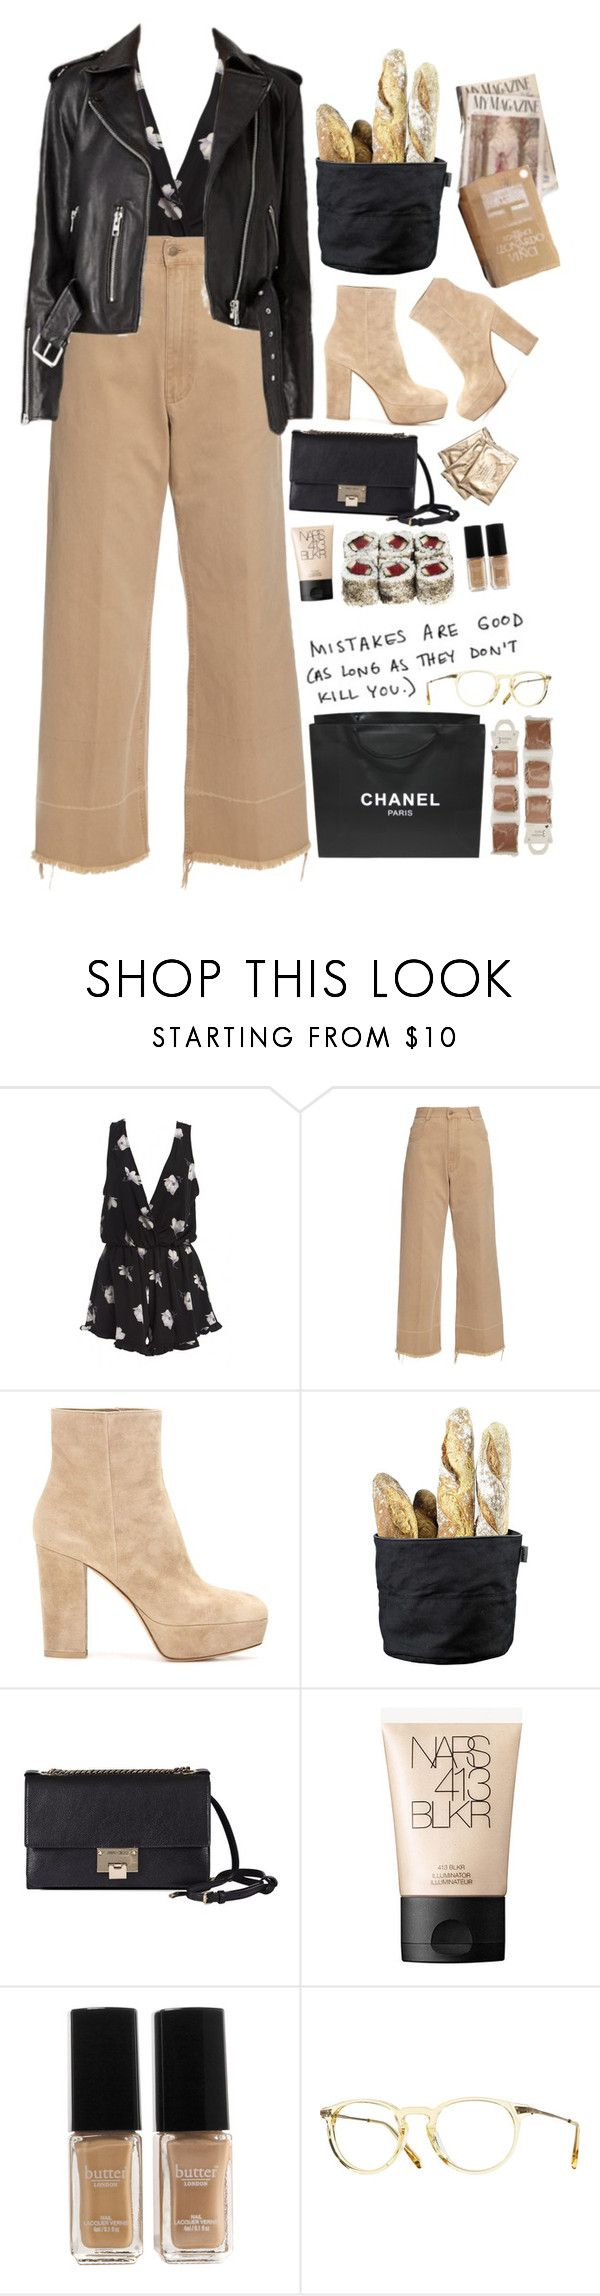 """""""Mistakes"""" by ritaflagy ❤ liked on Polyvore featuring Rachel Comey, Gianvito Rossi, Stelton, Jimmy Choo, NARS Cosmetics, Butter London, Chanel, Oliver Peoples and John Lewis"""